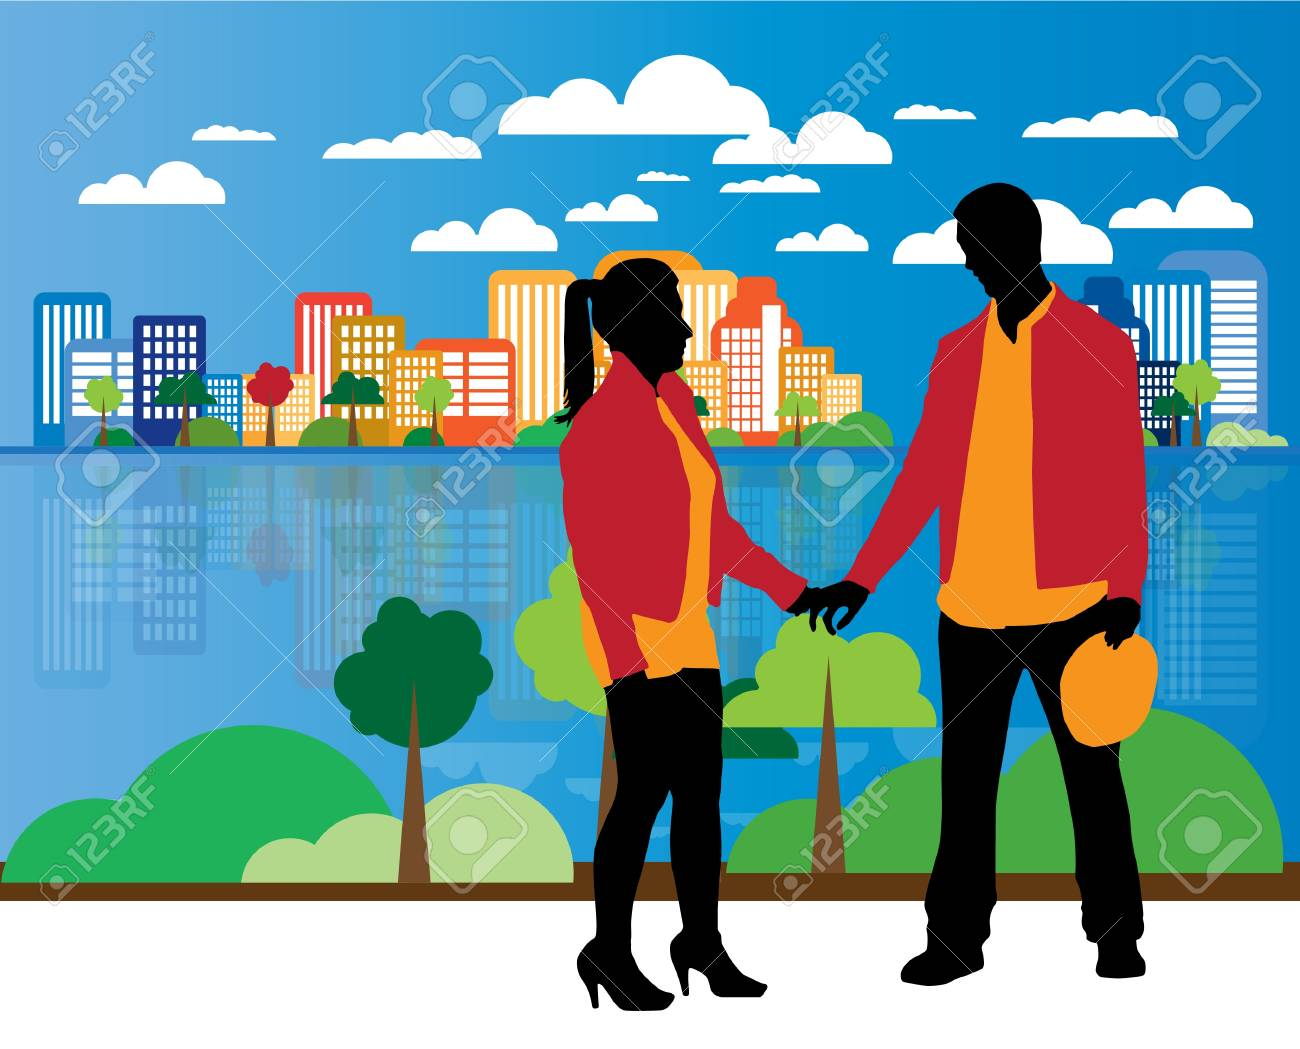 illustration of a couple Stock Photo - 16144196